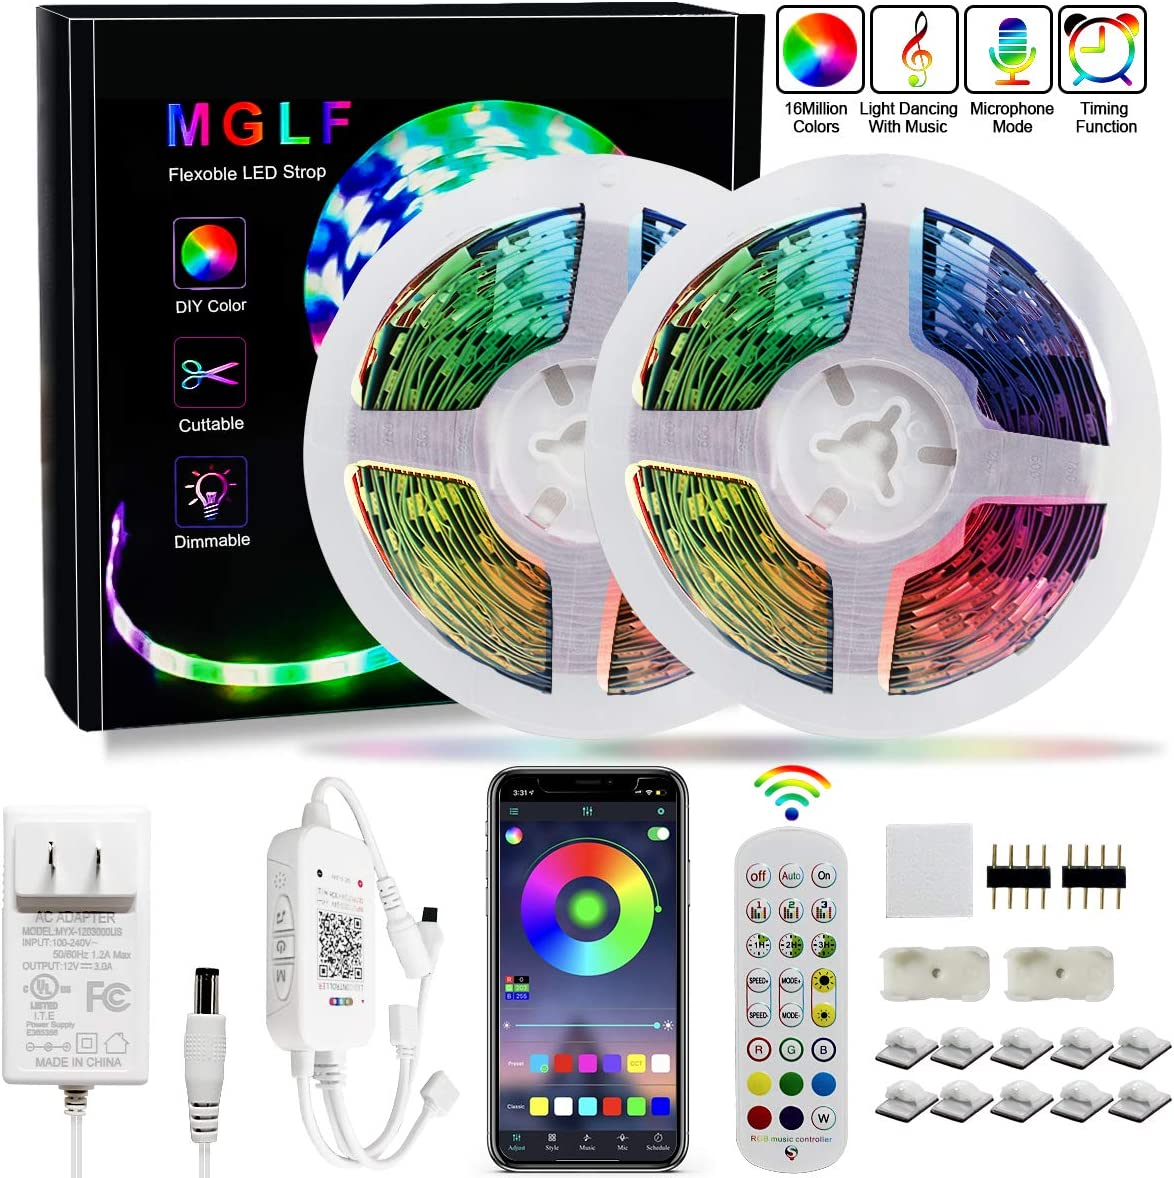 MGLF LED Strip Lights 32.8ft Bluetooth Music Sync Flexible Color Change RGB Led Rope Lights APP Control with 24 Keys Remote 12V(UL) Adapter RGB Light for Bedroom TV Halloween Christmas Home Decoration